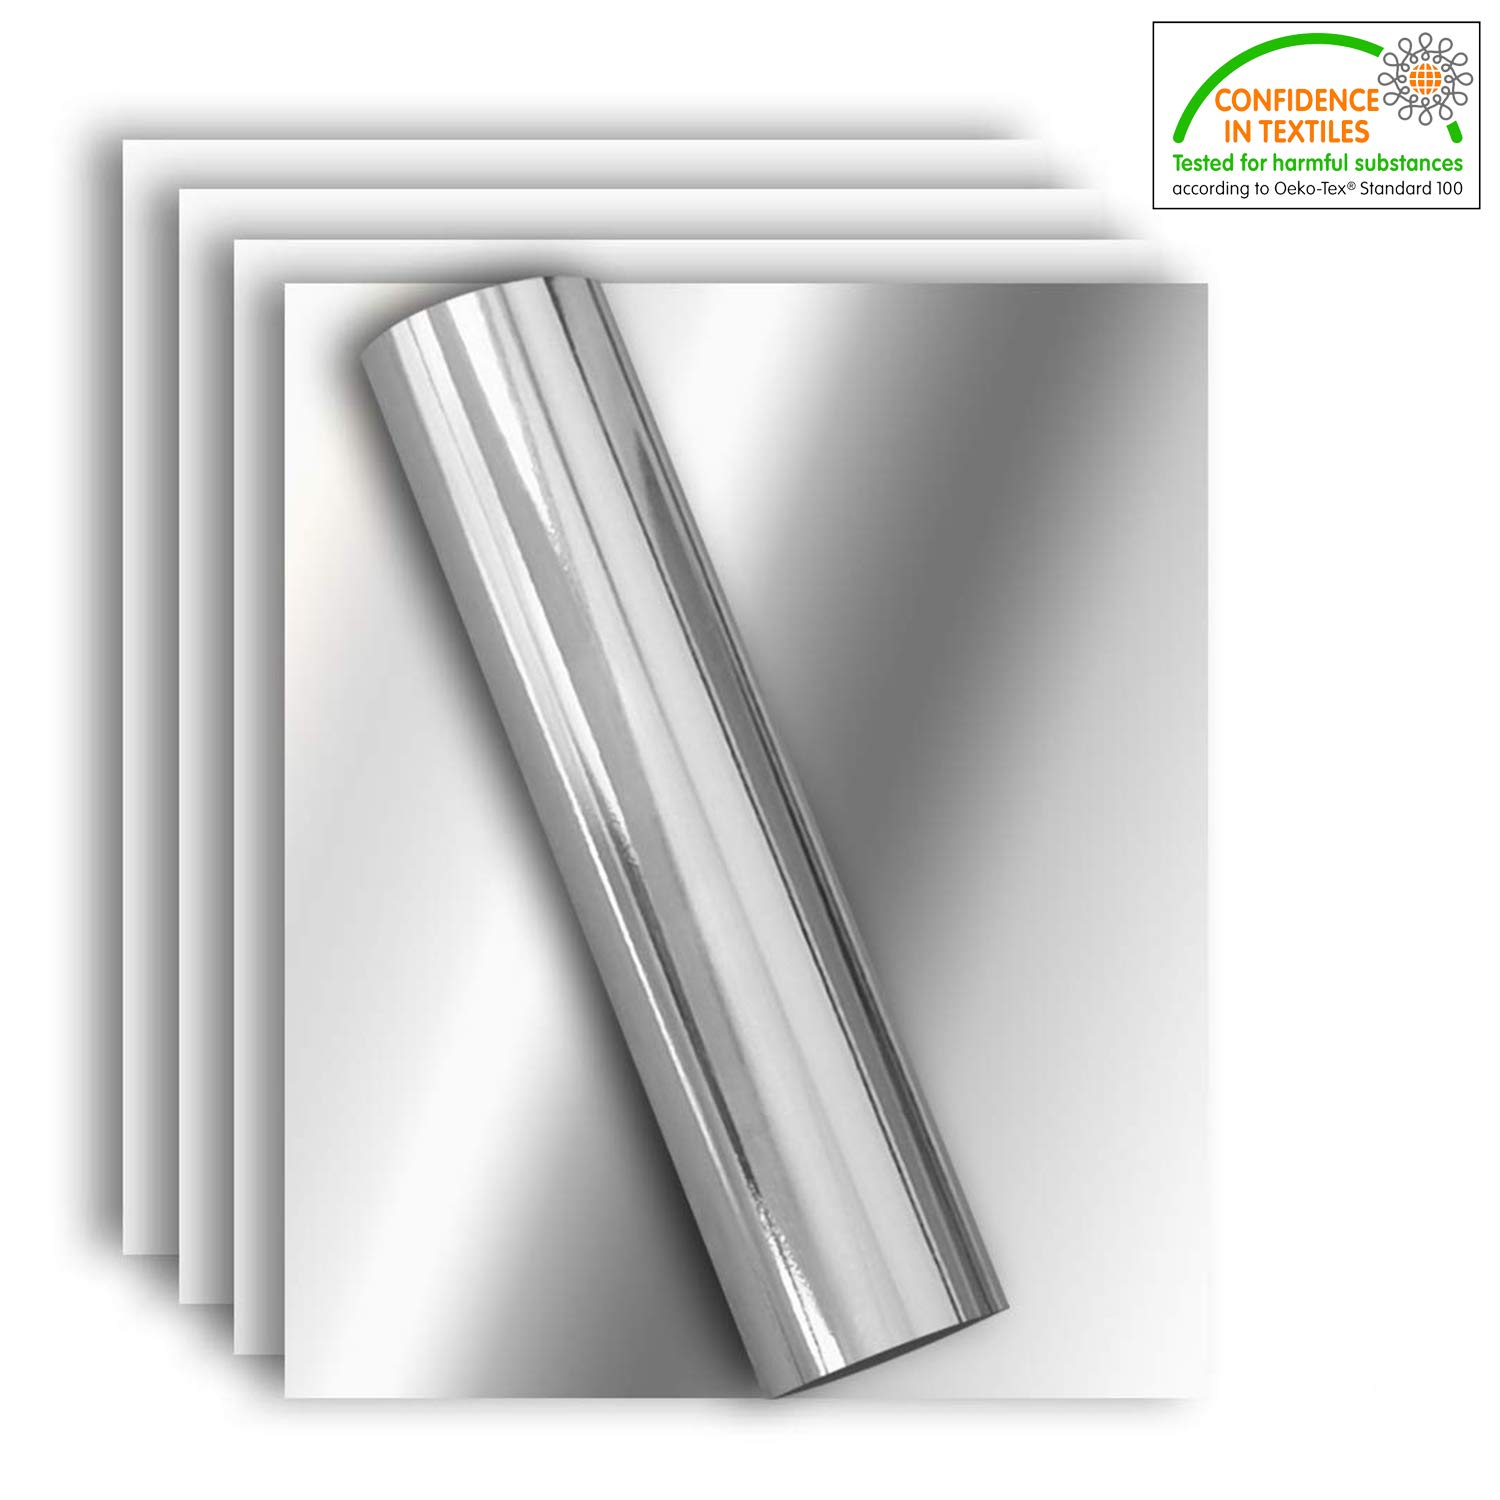 Stretchable Metallic Heat Transfer Vinyl Silver Foil, Iron On HTV Bundle for DIY Your Own Clothes, 12x10 Inch, Pack of 5, Eco-Friendly